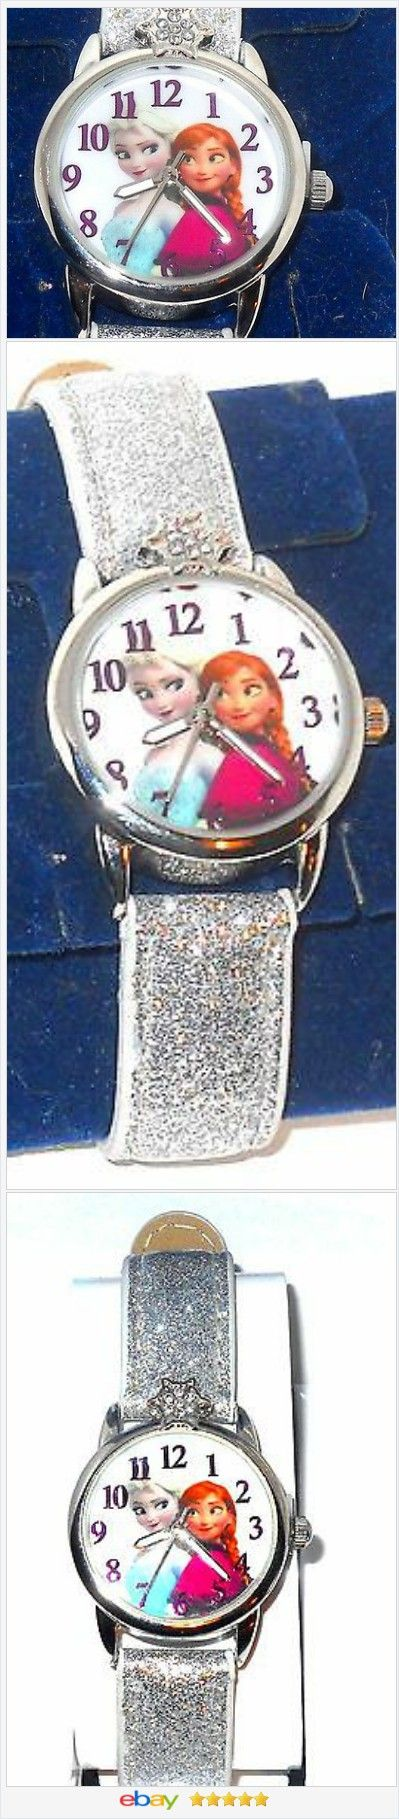 Disney Frozen Anna and Elsa Glitter Watch USA Seller #ebay http://stores.ebay.com/JEWELRY-AND-GIFTS-BY-ALICE-AND-ANN